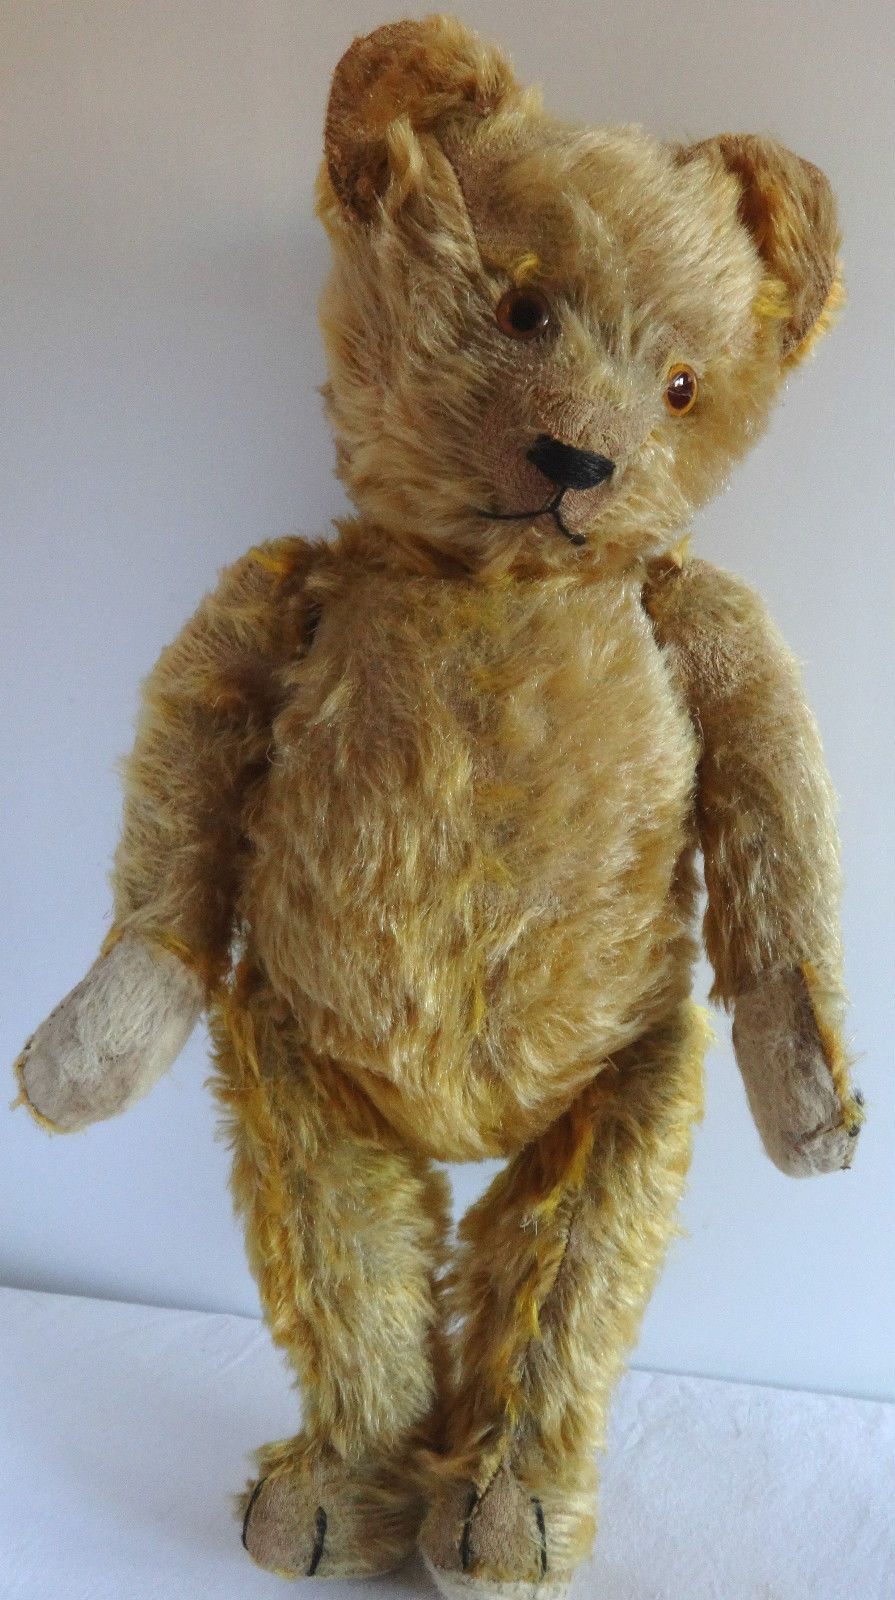 Old Fashioned Teddy Bears For Sale